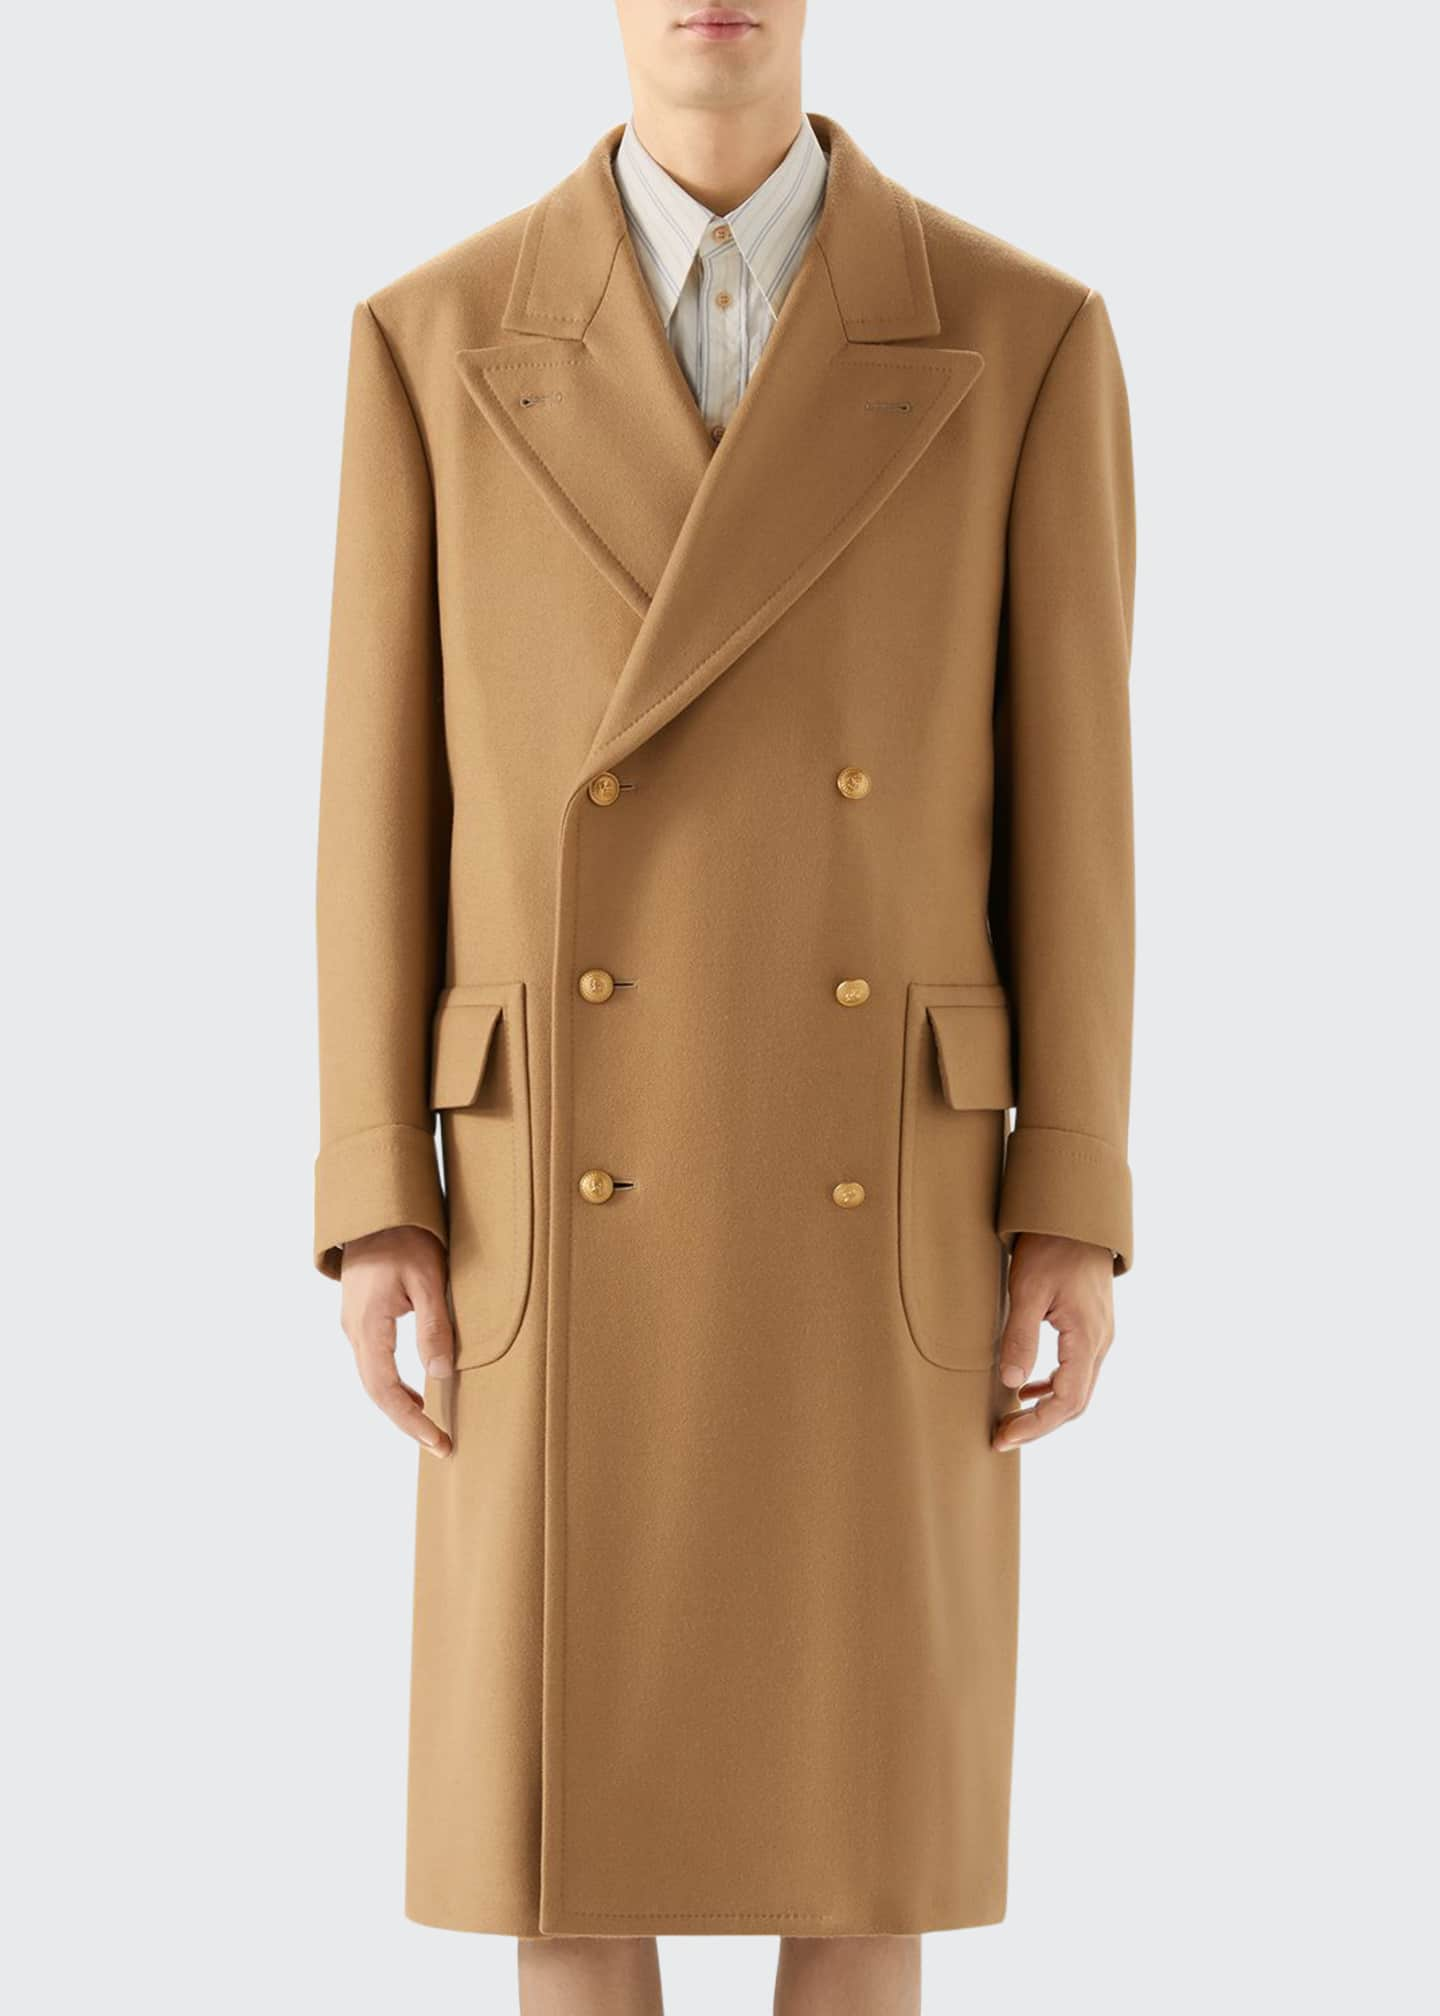 Image 1 of 2: Men's Double-Breasted Camel Coat